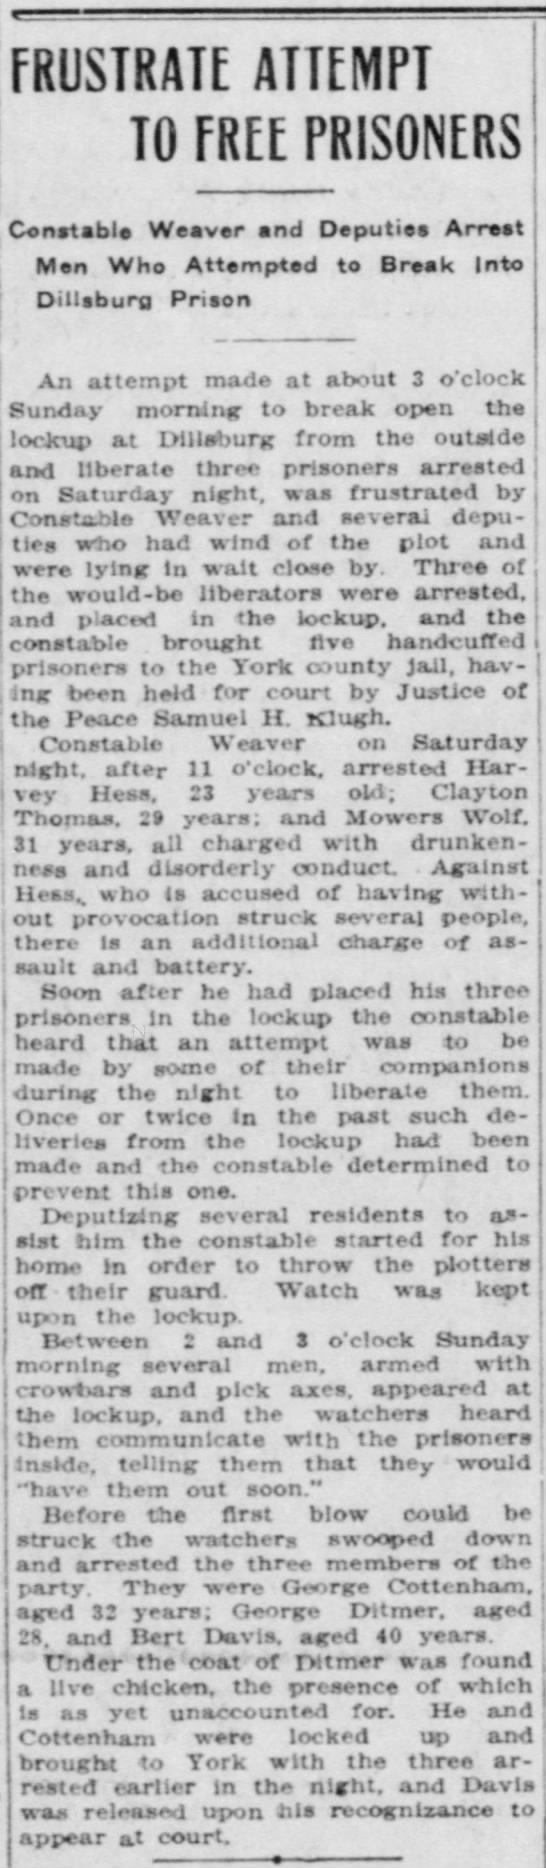 Attempted escape from Dillsburg lockup - Rut-'the j ' 31 years, all charged with...